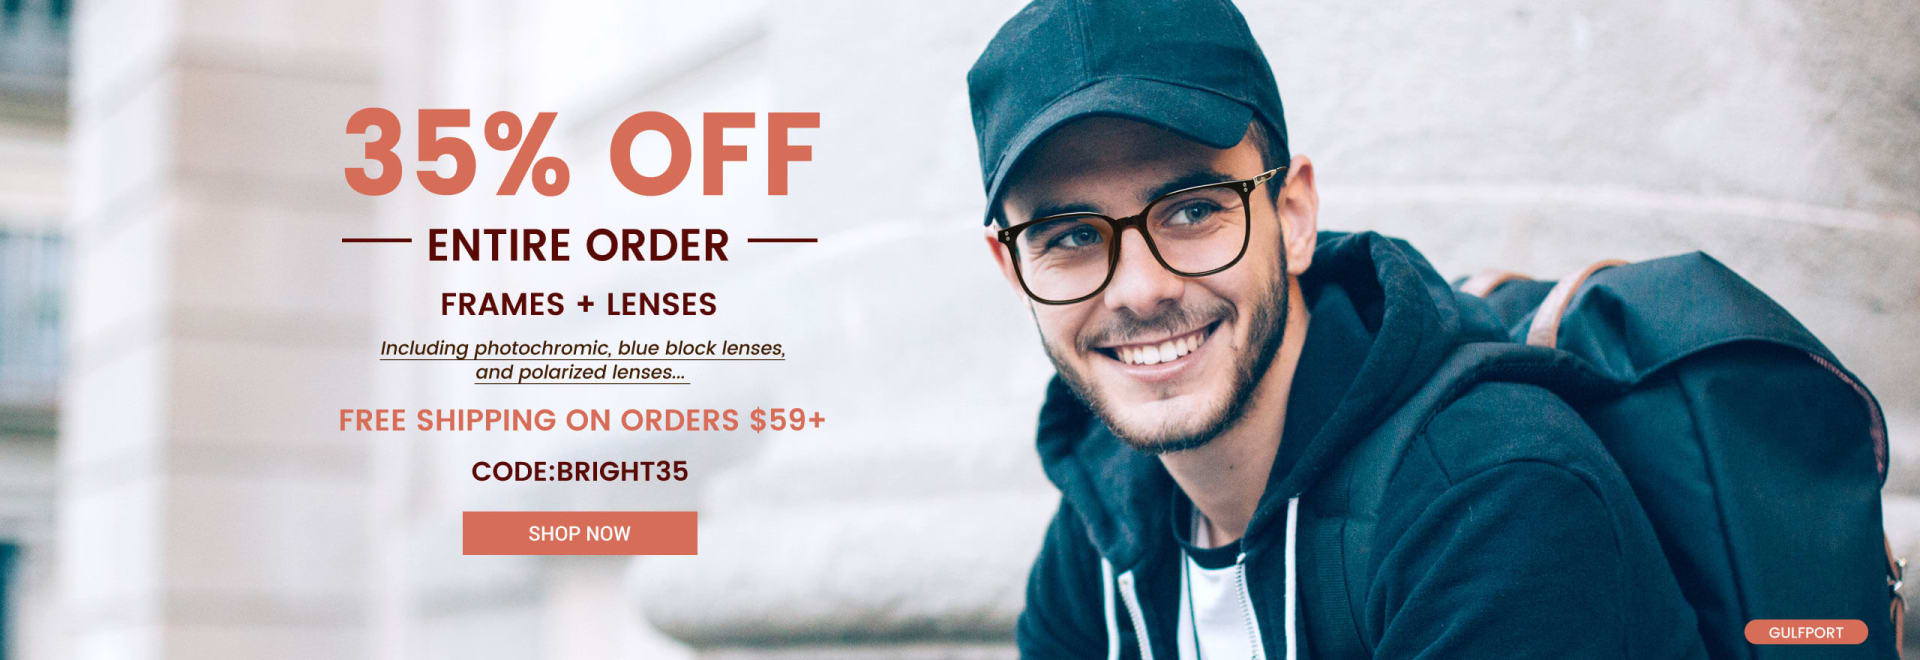 35% off entire order